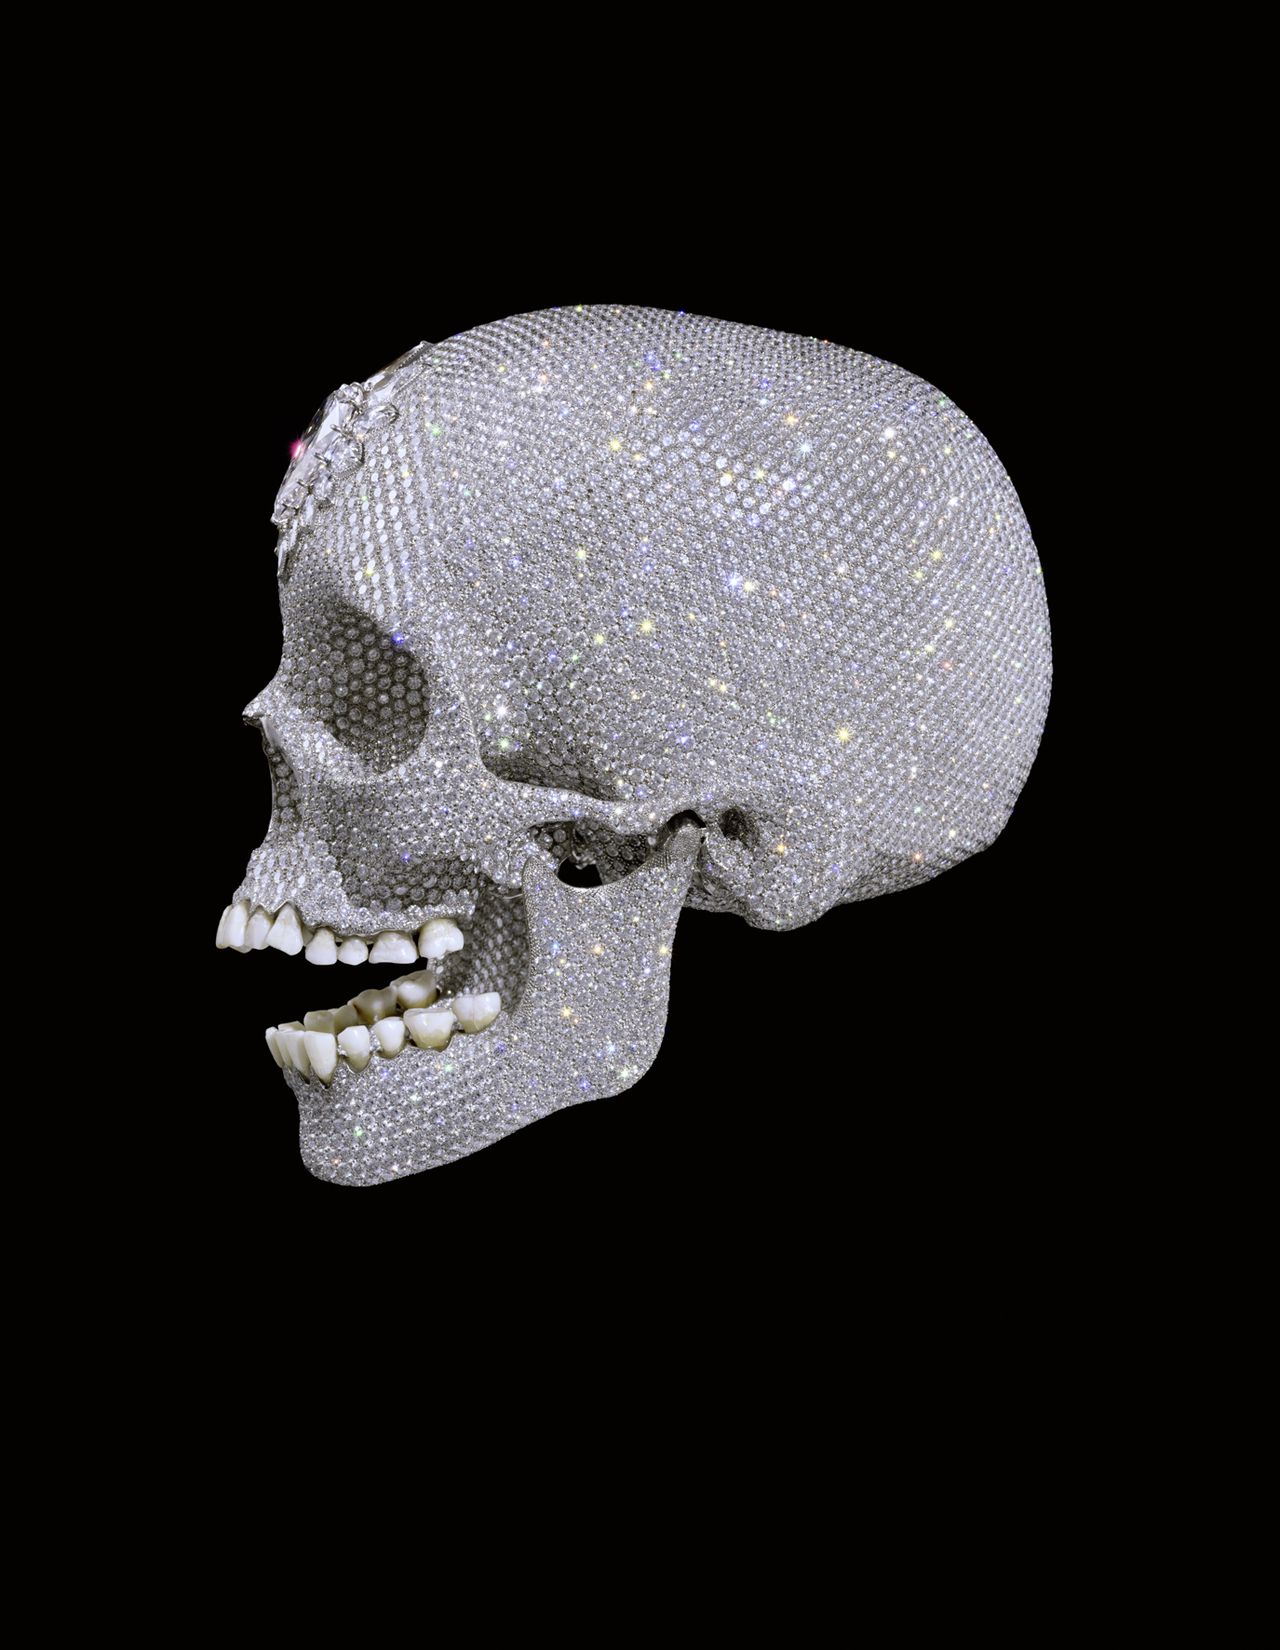 'For the Love of God', 2007 Foto Prudence Cuming Associates Ltd For the Love of God, Damien Hirst 2007 Platinum, diamonds and human teeth 7 x 5 x 8 in Photo: Prudence Cuming Associates